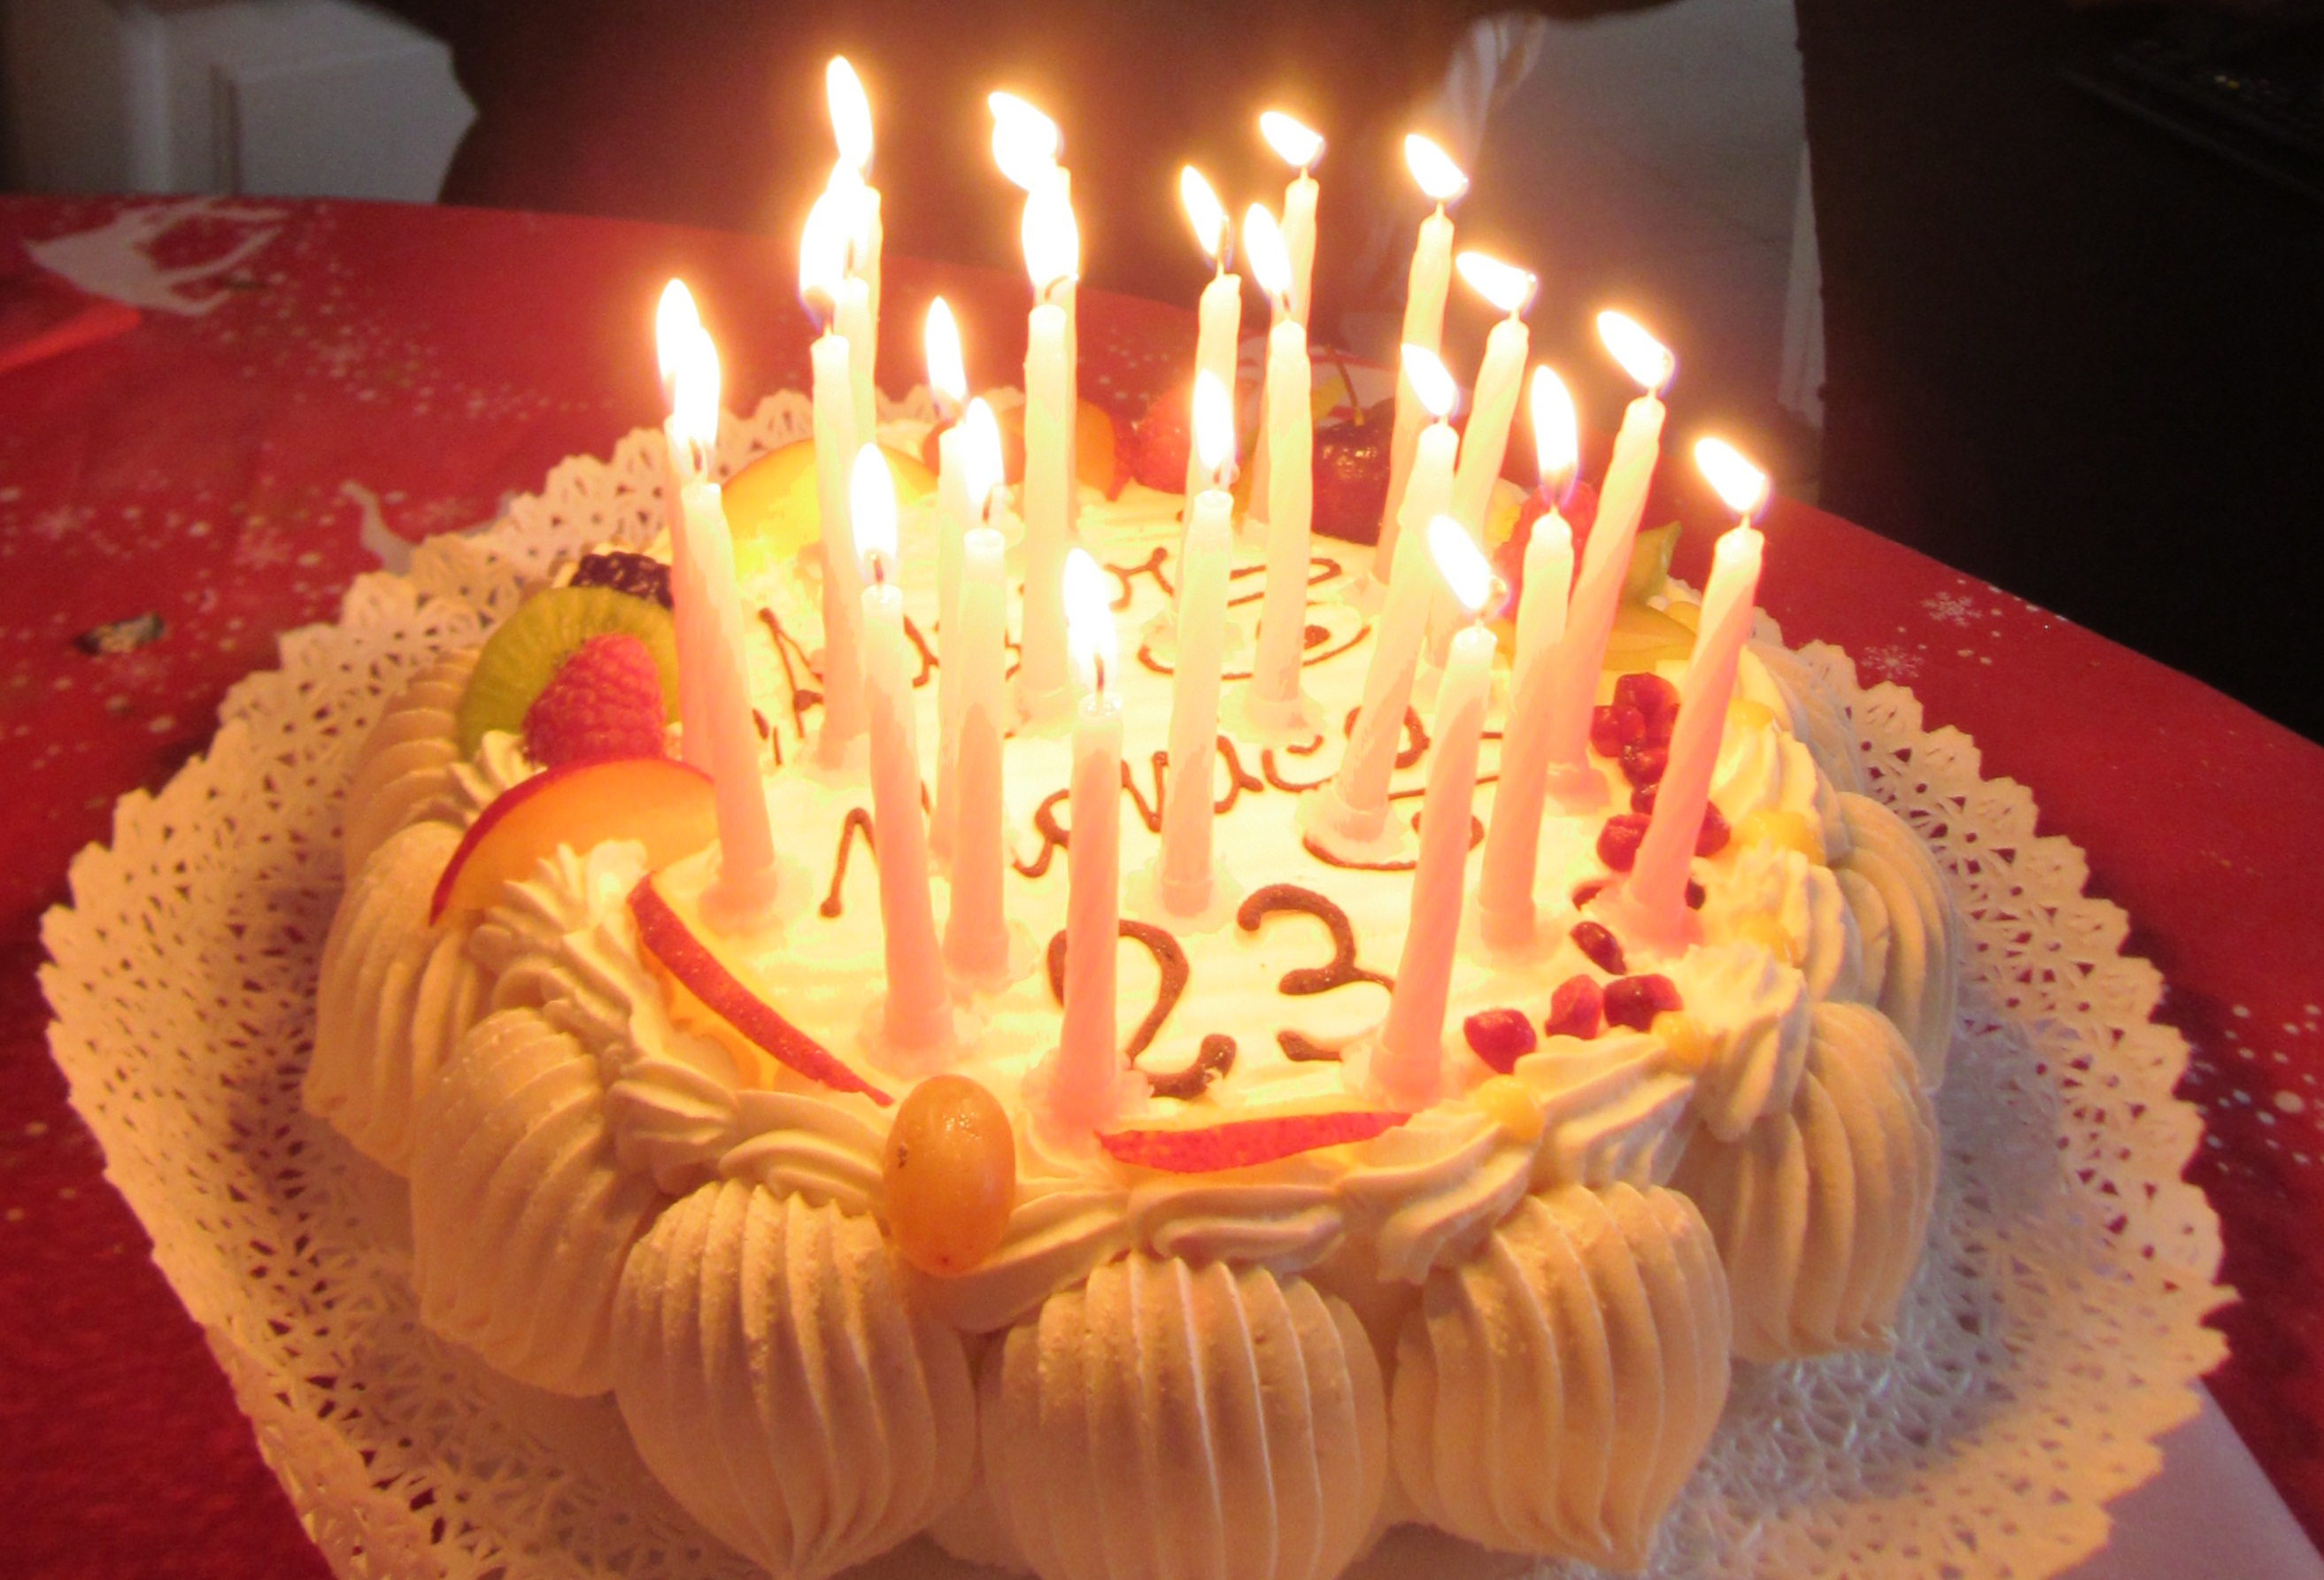 FileItaly birthday cake with candles 5jpg Wikimedia Commons